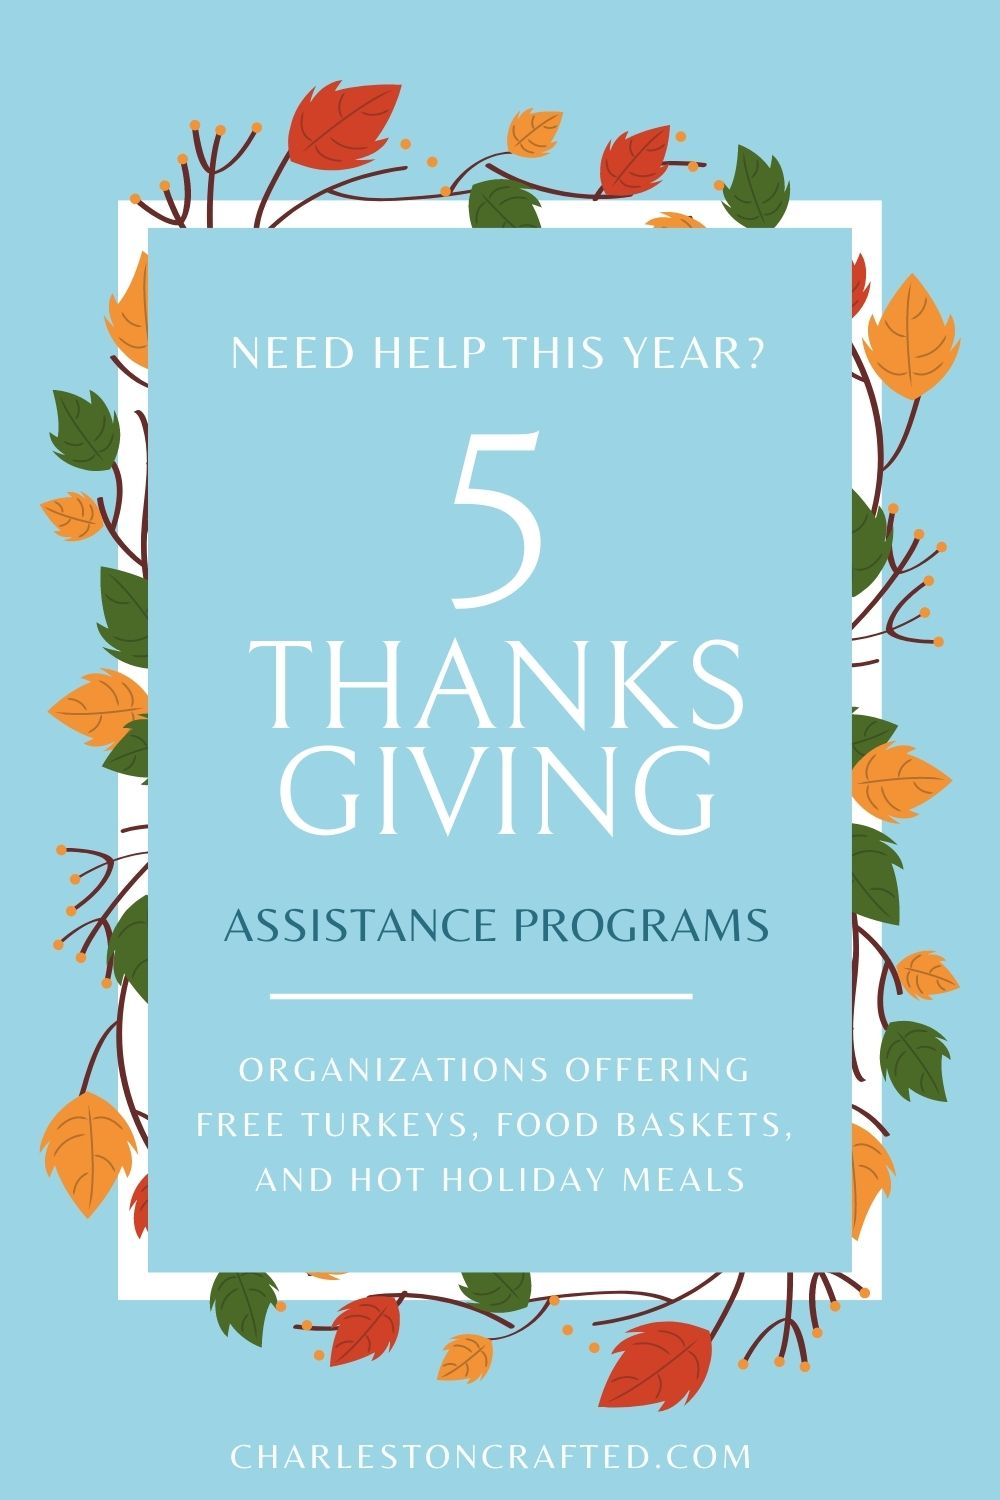 Free Christmas Turkeys For Low Income Families 2020 5 Thanksgiving Assistance Programs for 2020